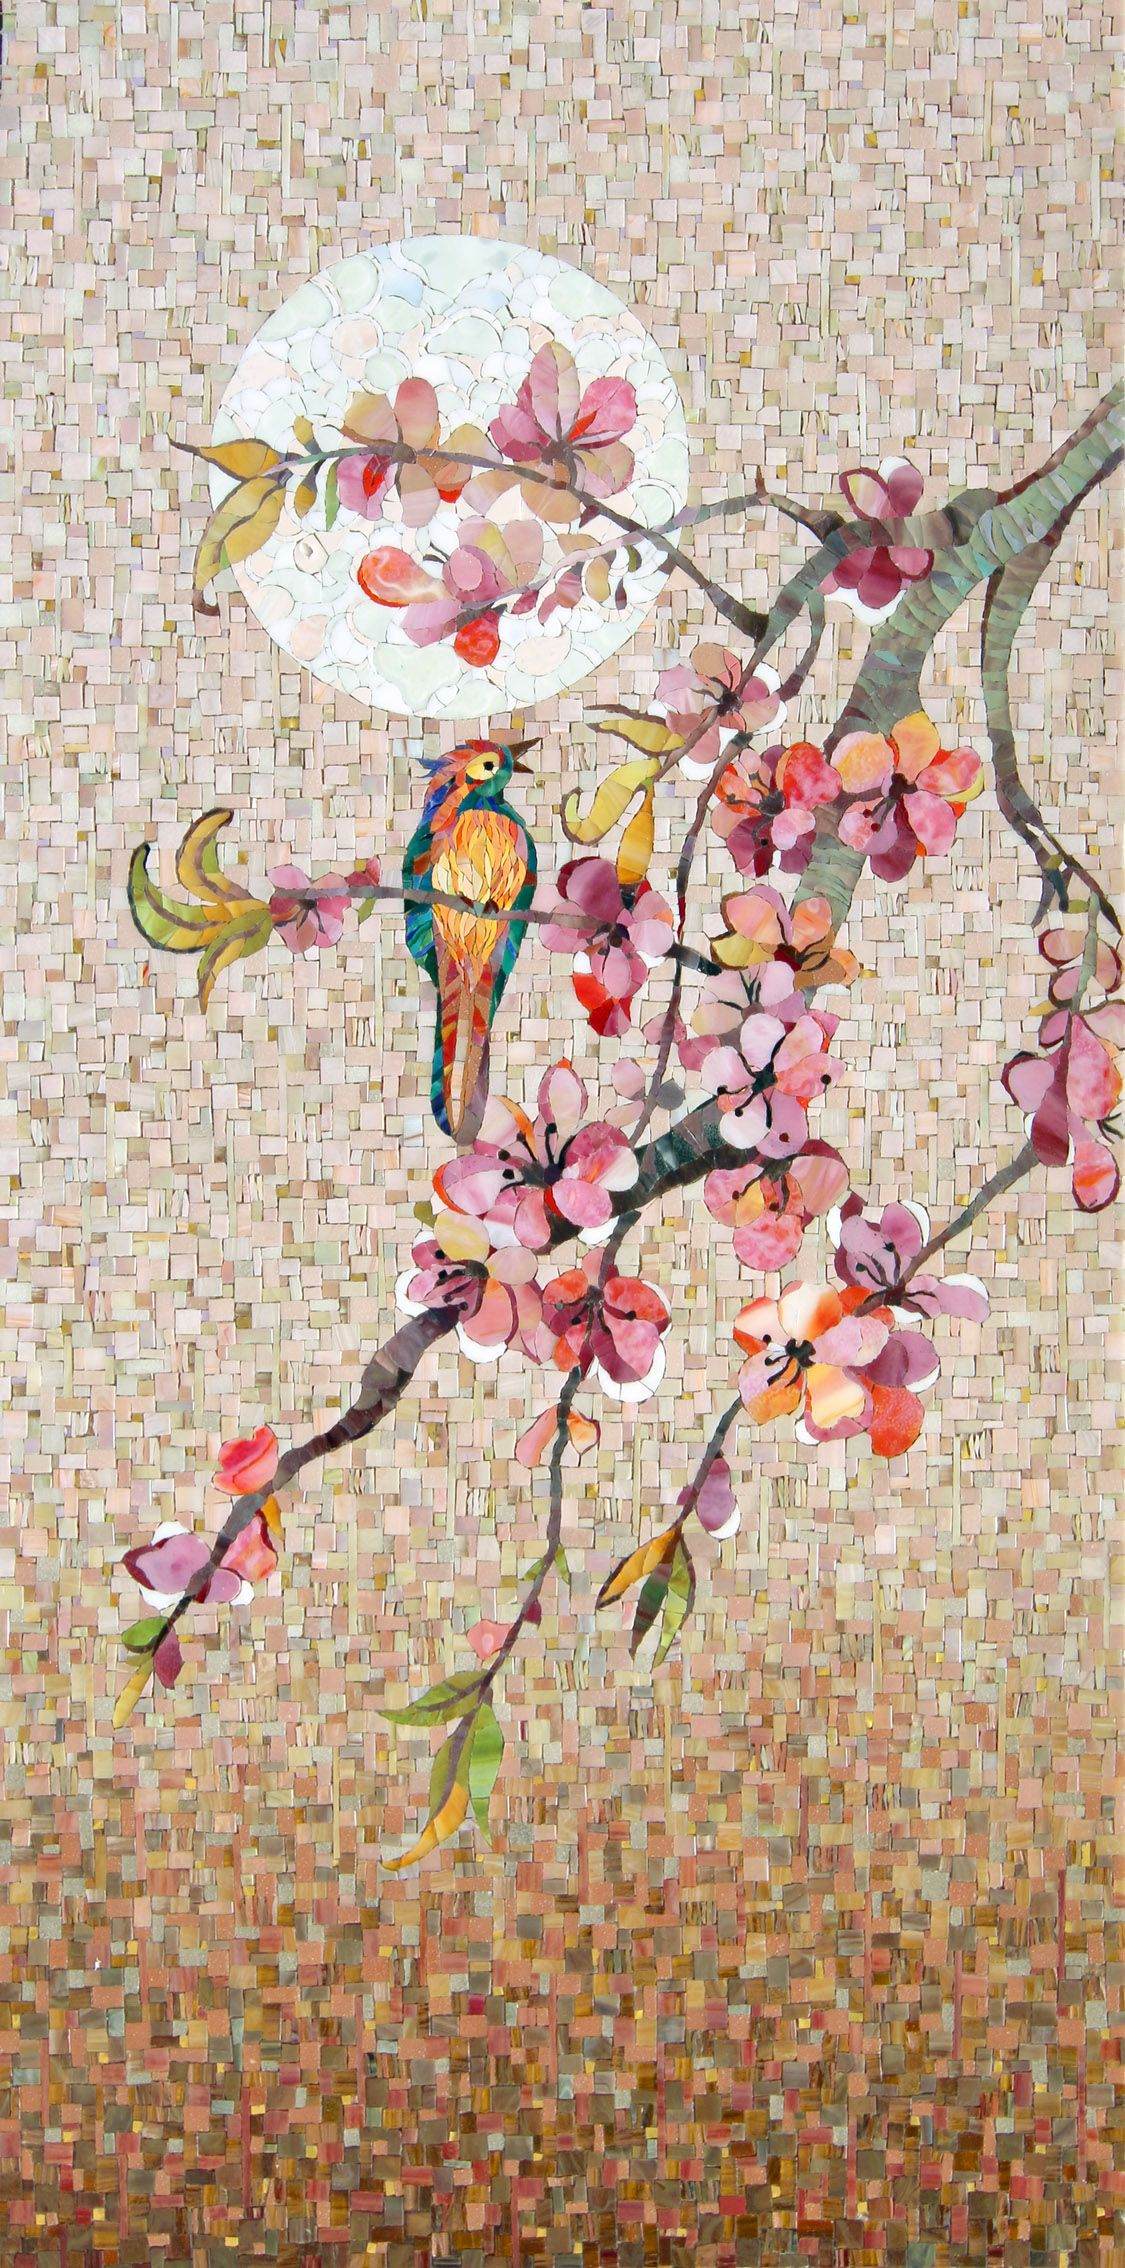 Panels Mosaic bird on a branch #craftstosell